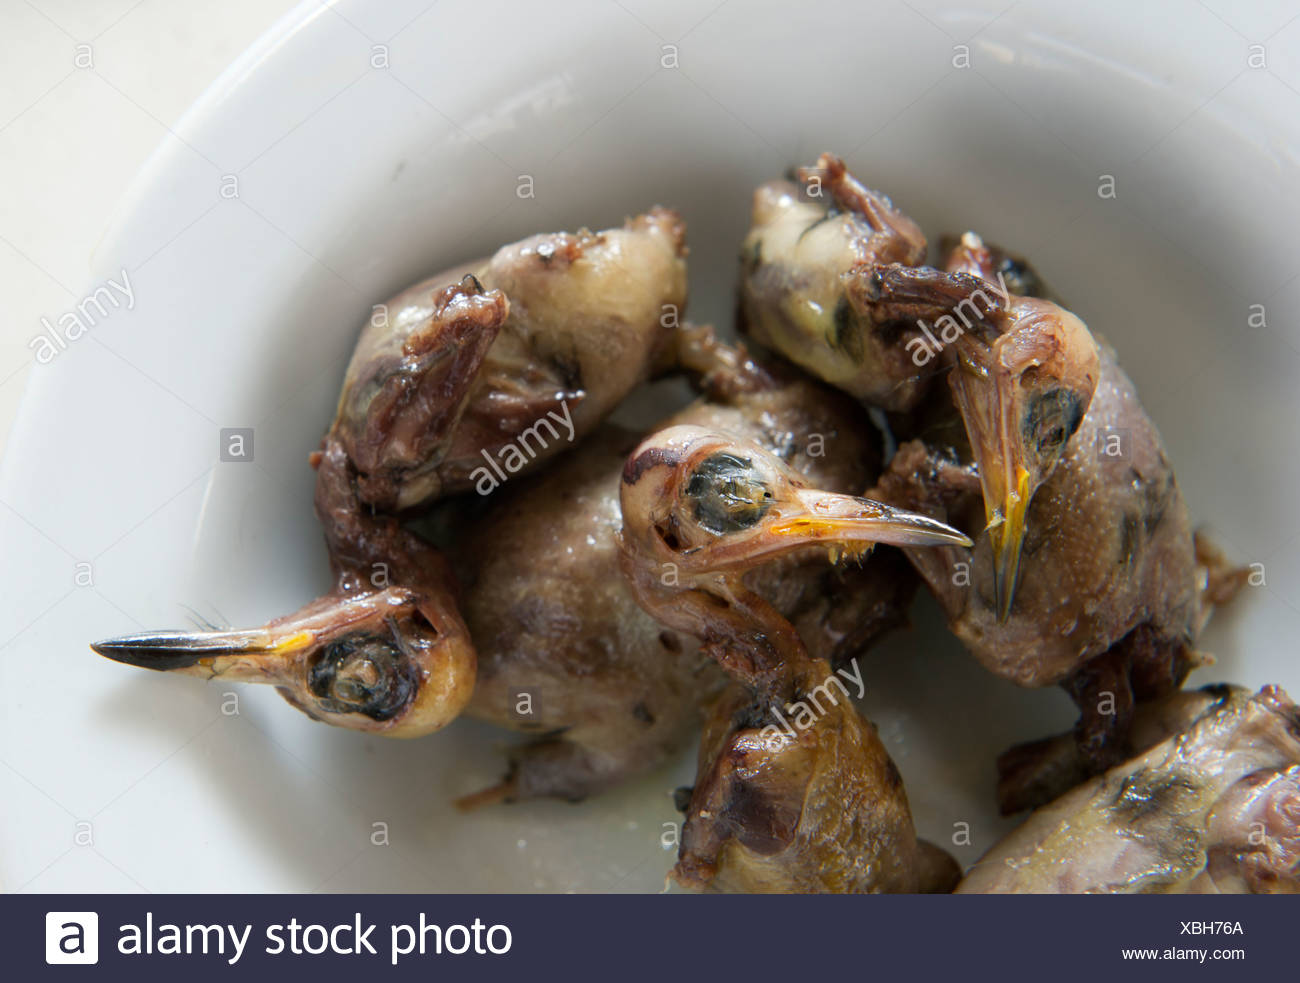 Ambelopoulia (means birds of the vineyards) mainly Blackcaps prepared to be served in a restaurant as a delicacy Cyprus Stock Photo